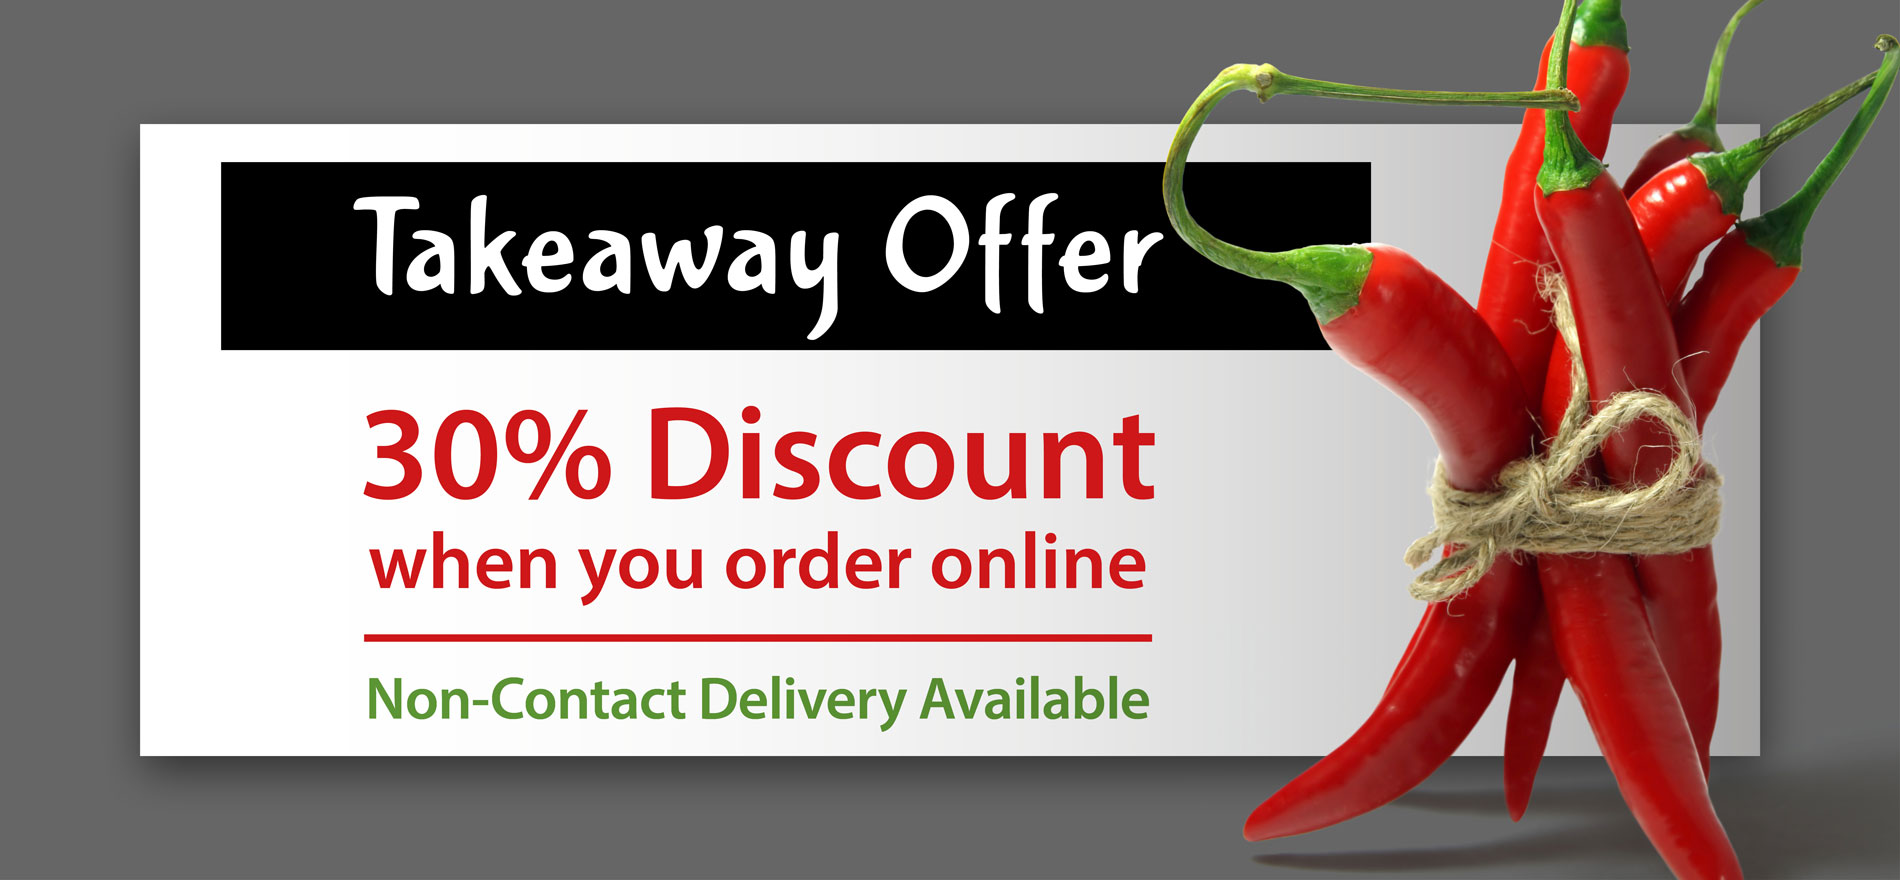 30% Discount on Takeaways Offer